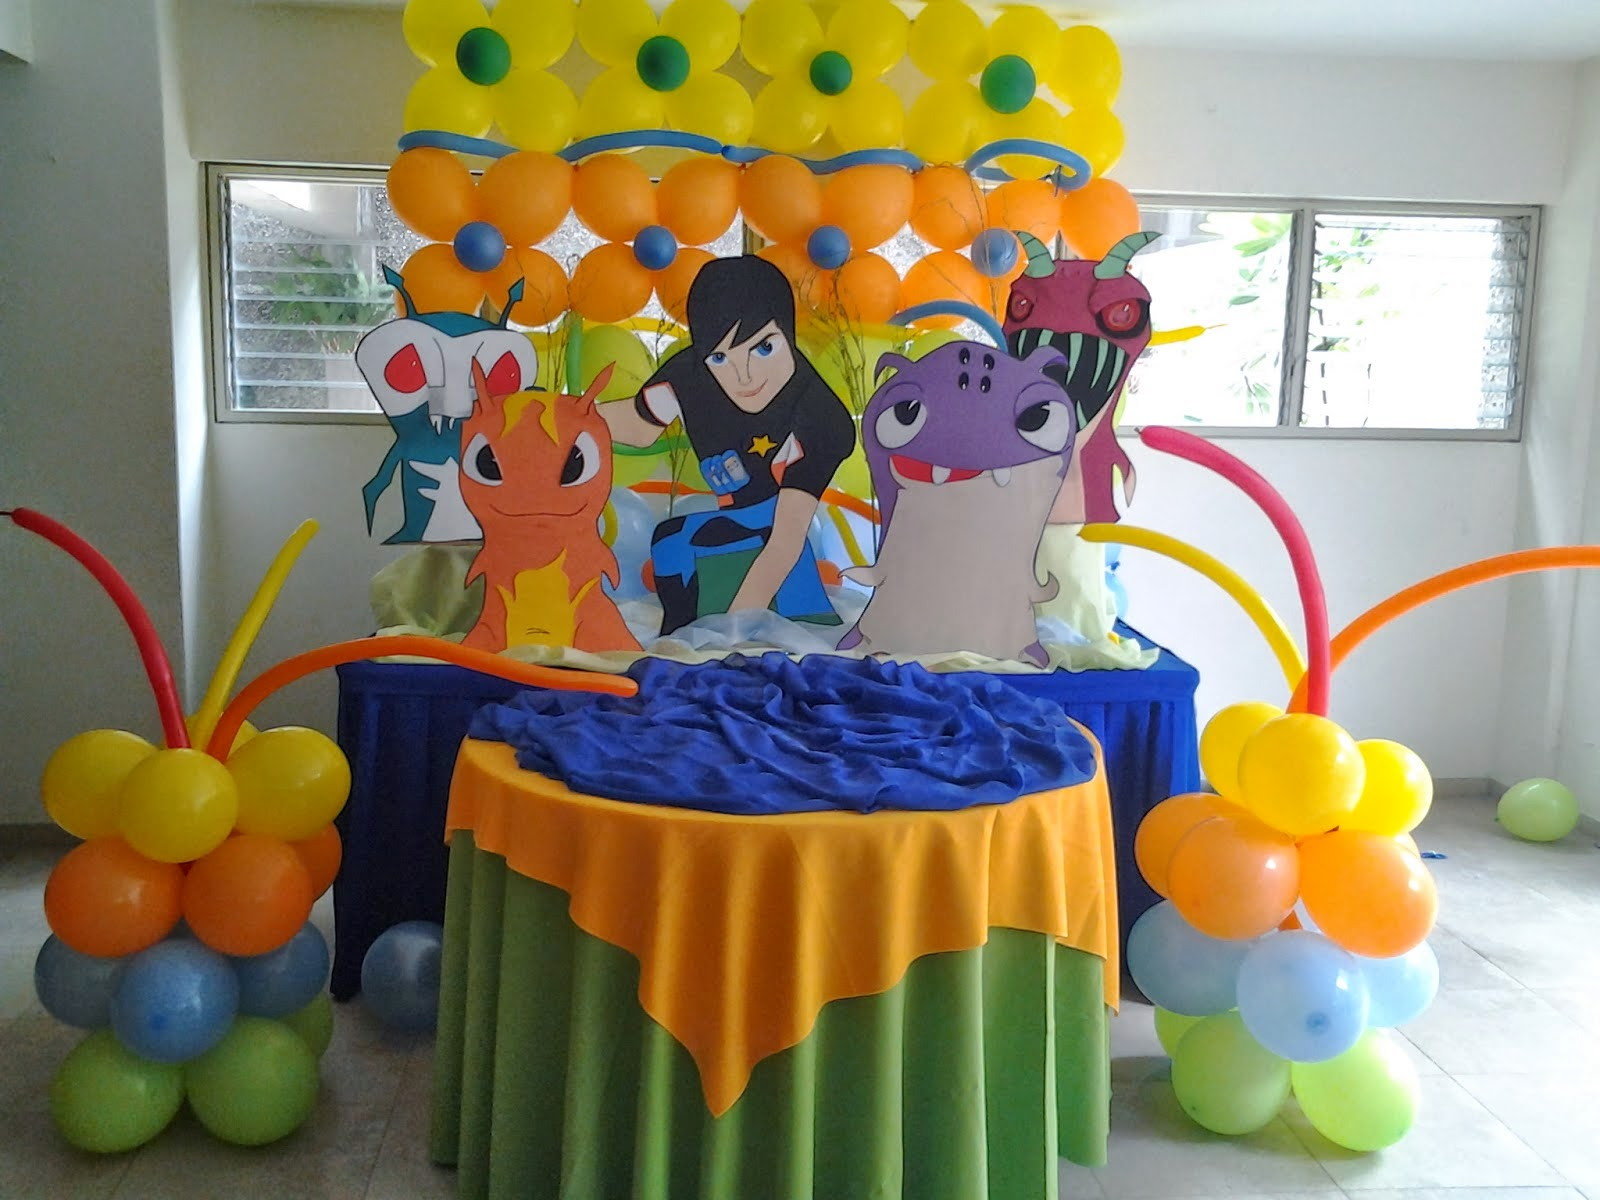 Fiestas infantiles decoradas con bajoterra for Buscar decoraciones